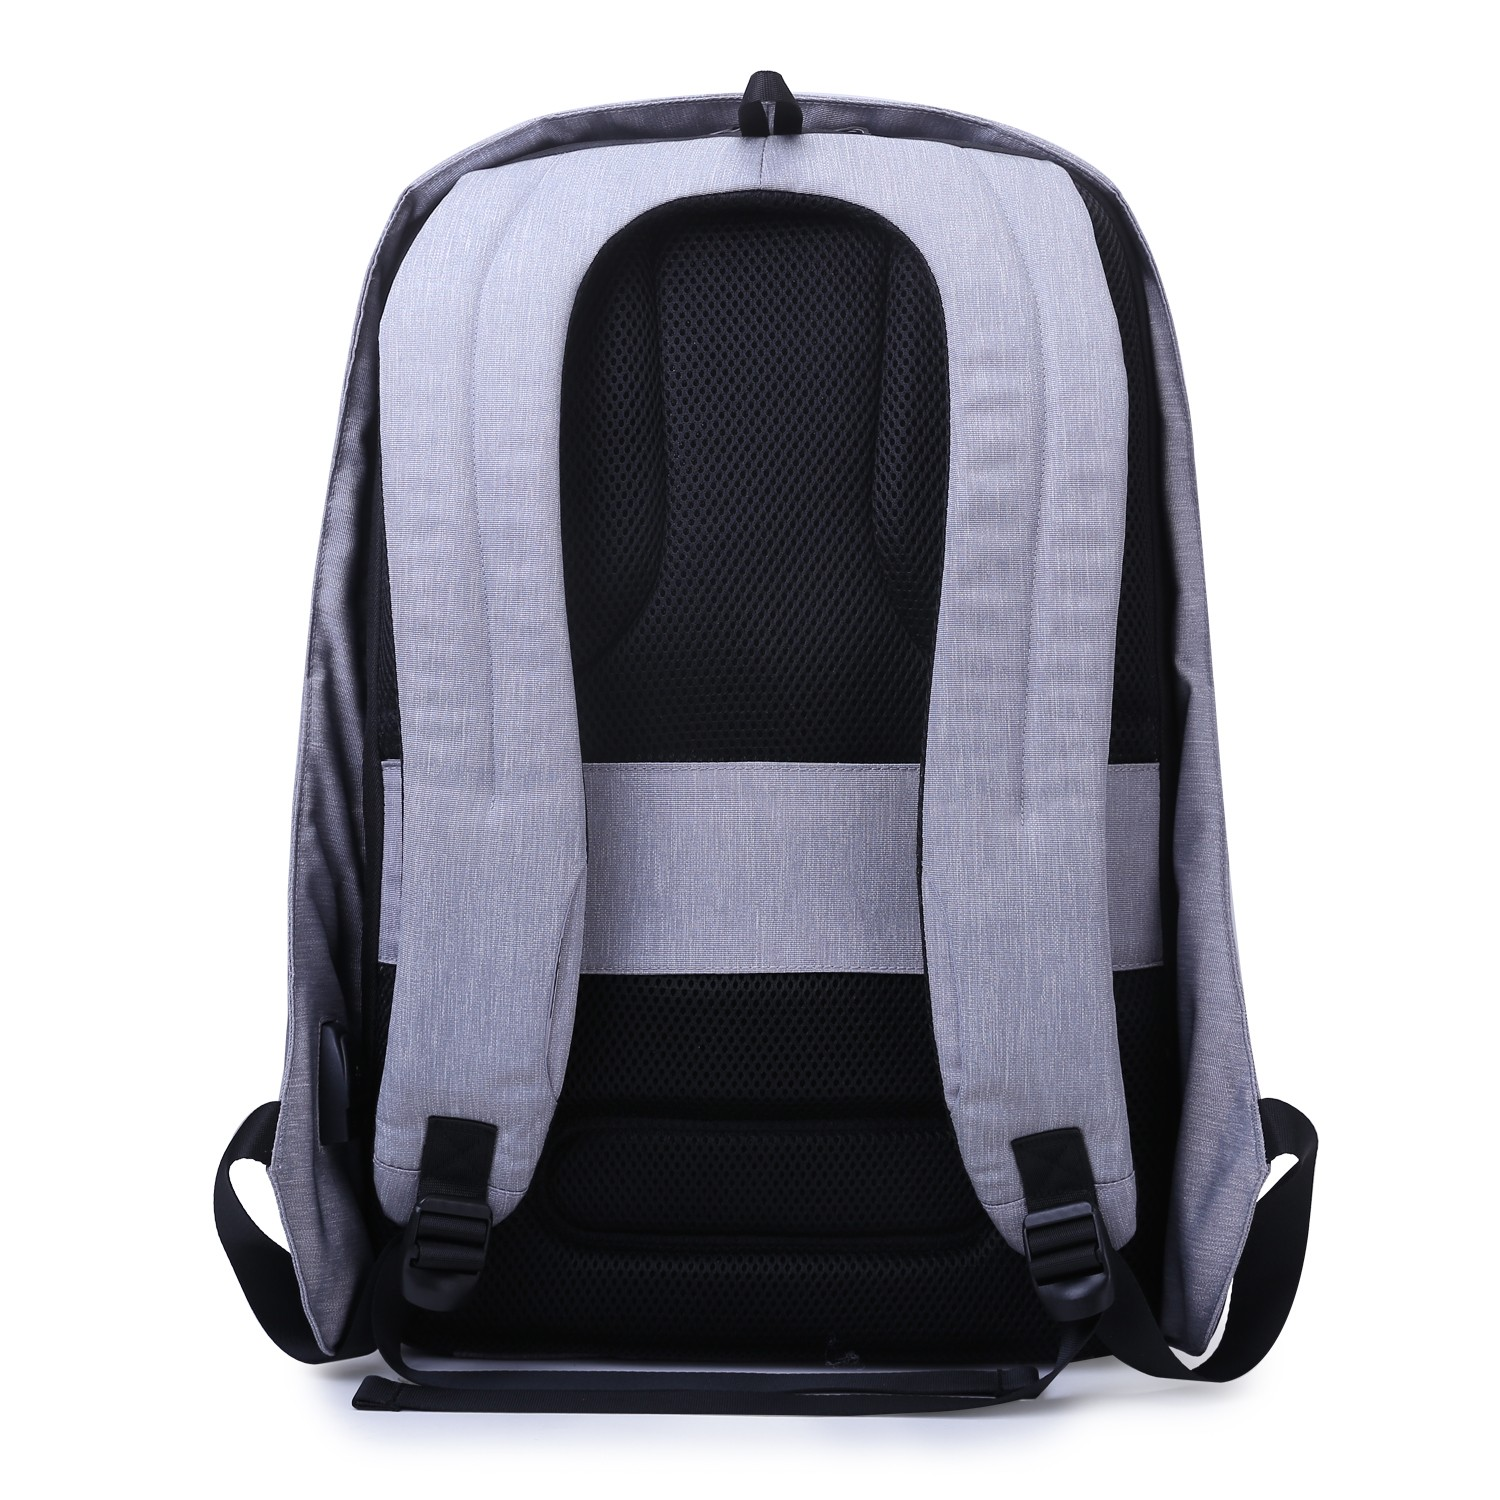 Anti Theft Laptop Backpack Manufacturers, Anti Theft Laptop Backpack Factory, Supply Anti Theft Laptop Backpack